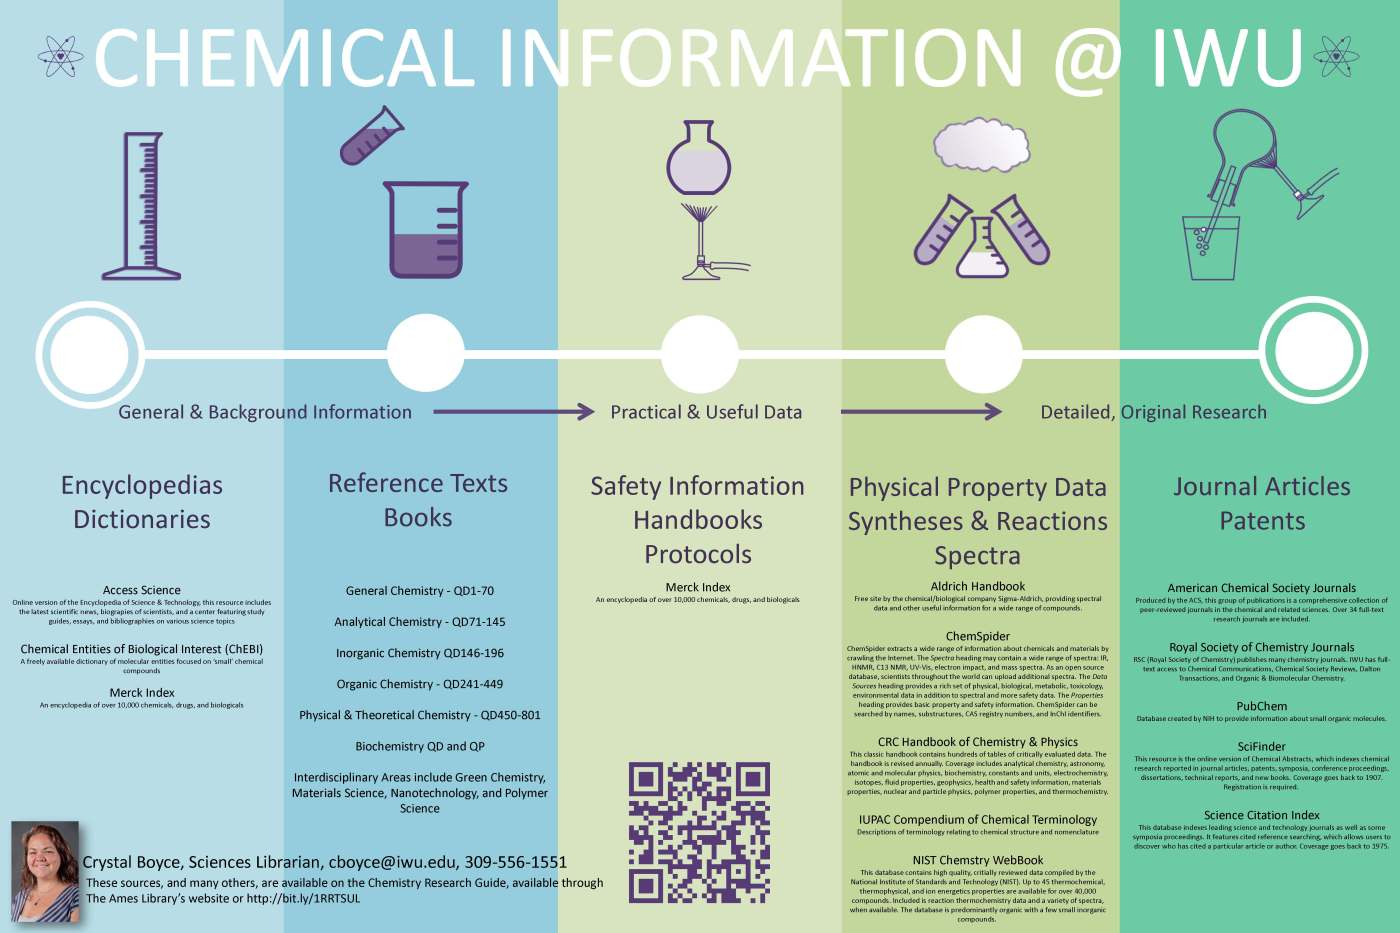 Chemical Information @ IWU Poster